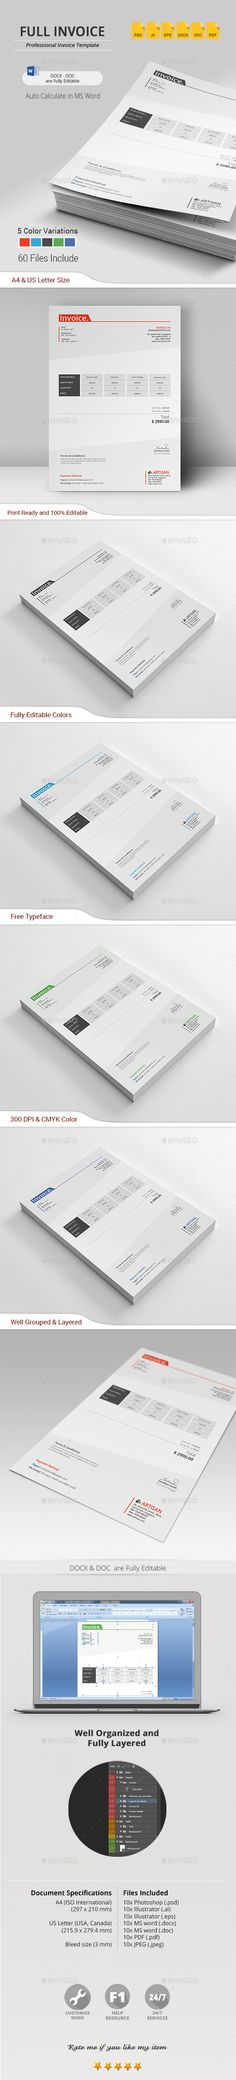 invoice template stationery templates proposal templates ai illustrator proposals visit cards annual reports brochures booklet